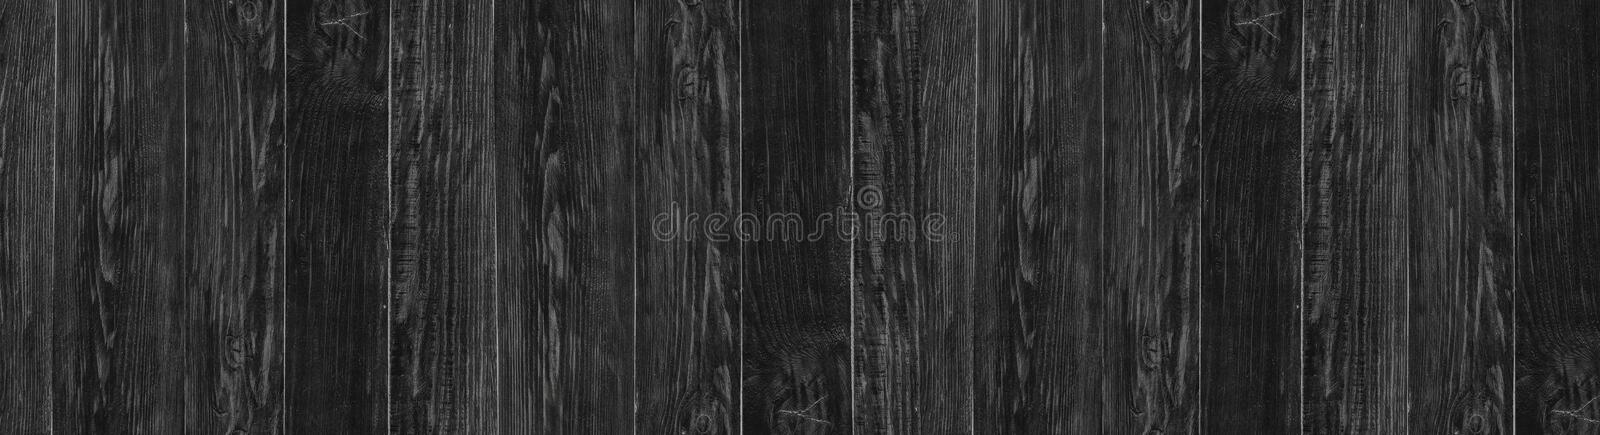 Vintage Black wood background. Dark wooden panoramic texture stock images